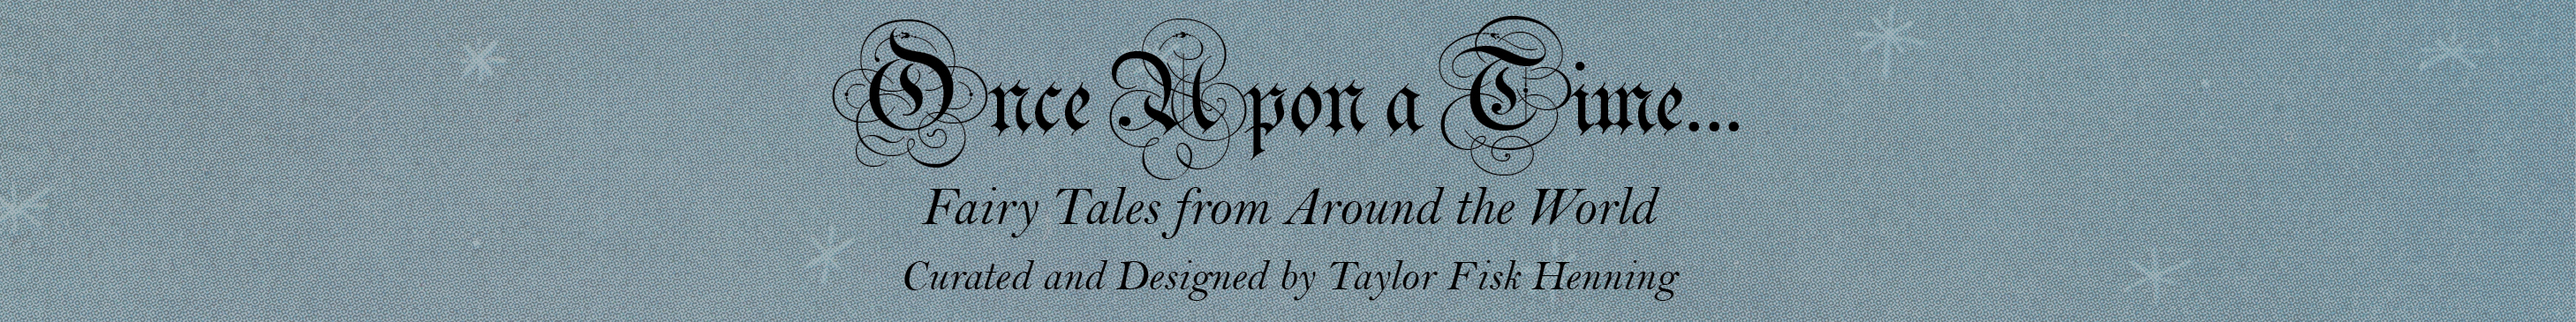 Once Upon a Time... Fairy Tales from Around the World, Curated and Designed by Taylor Fisk Henning